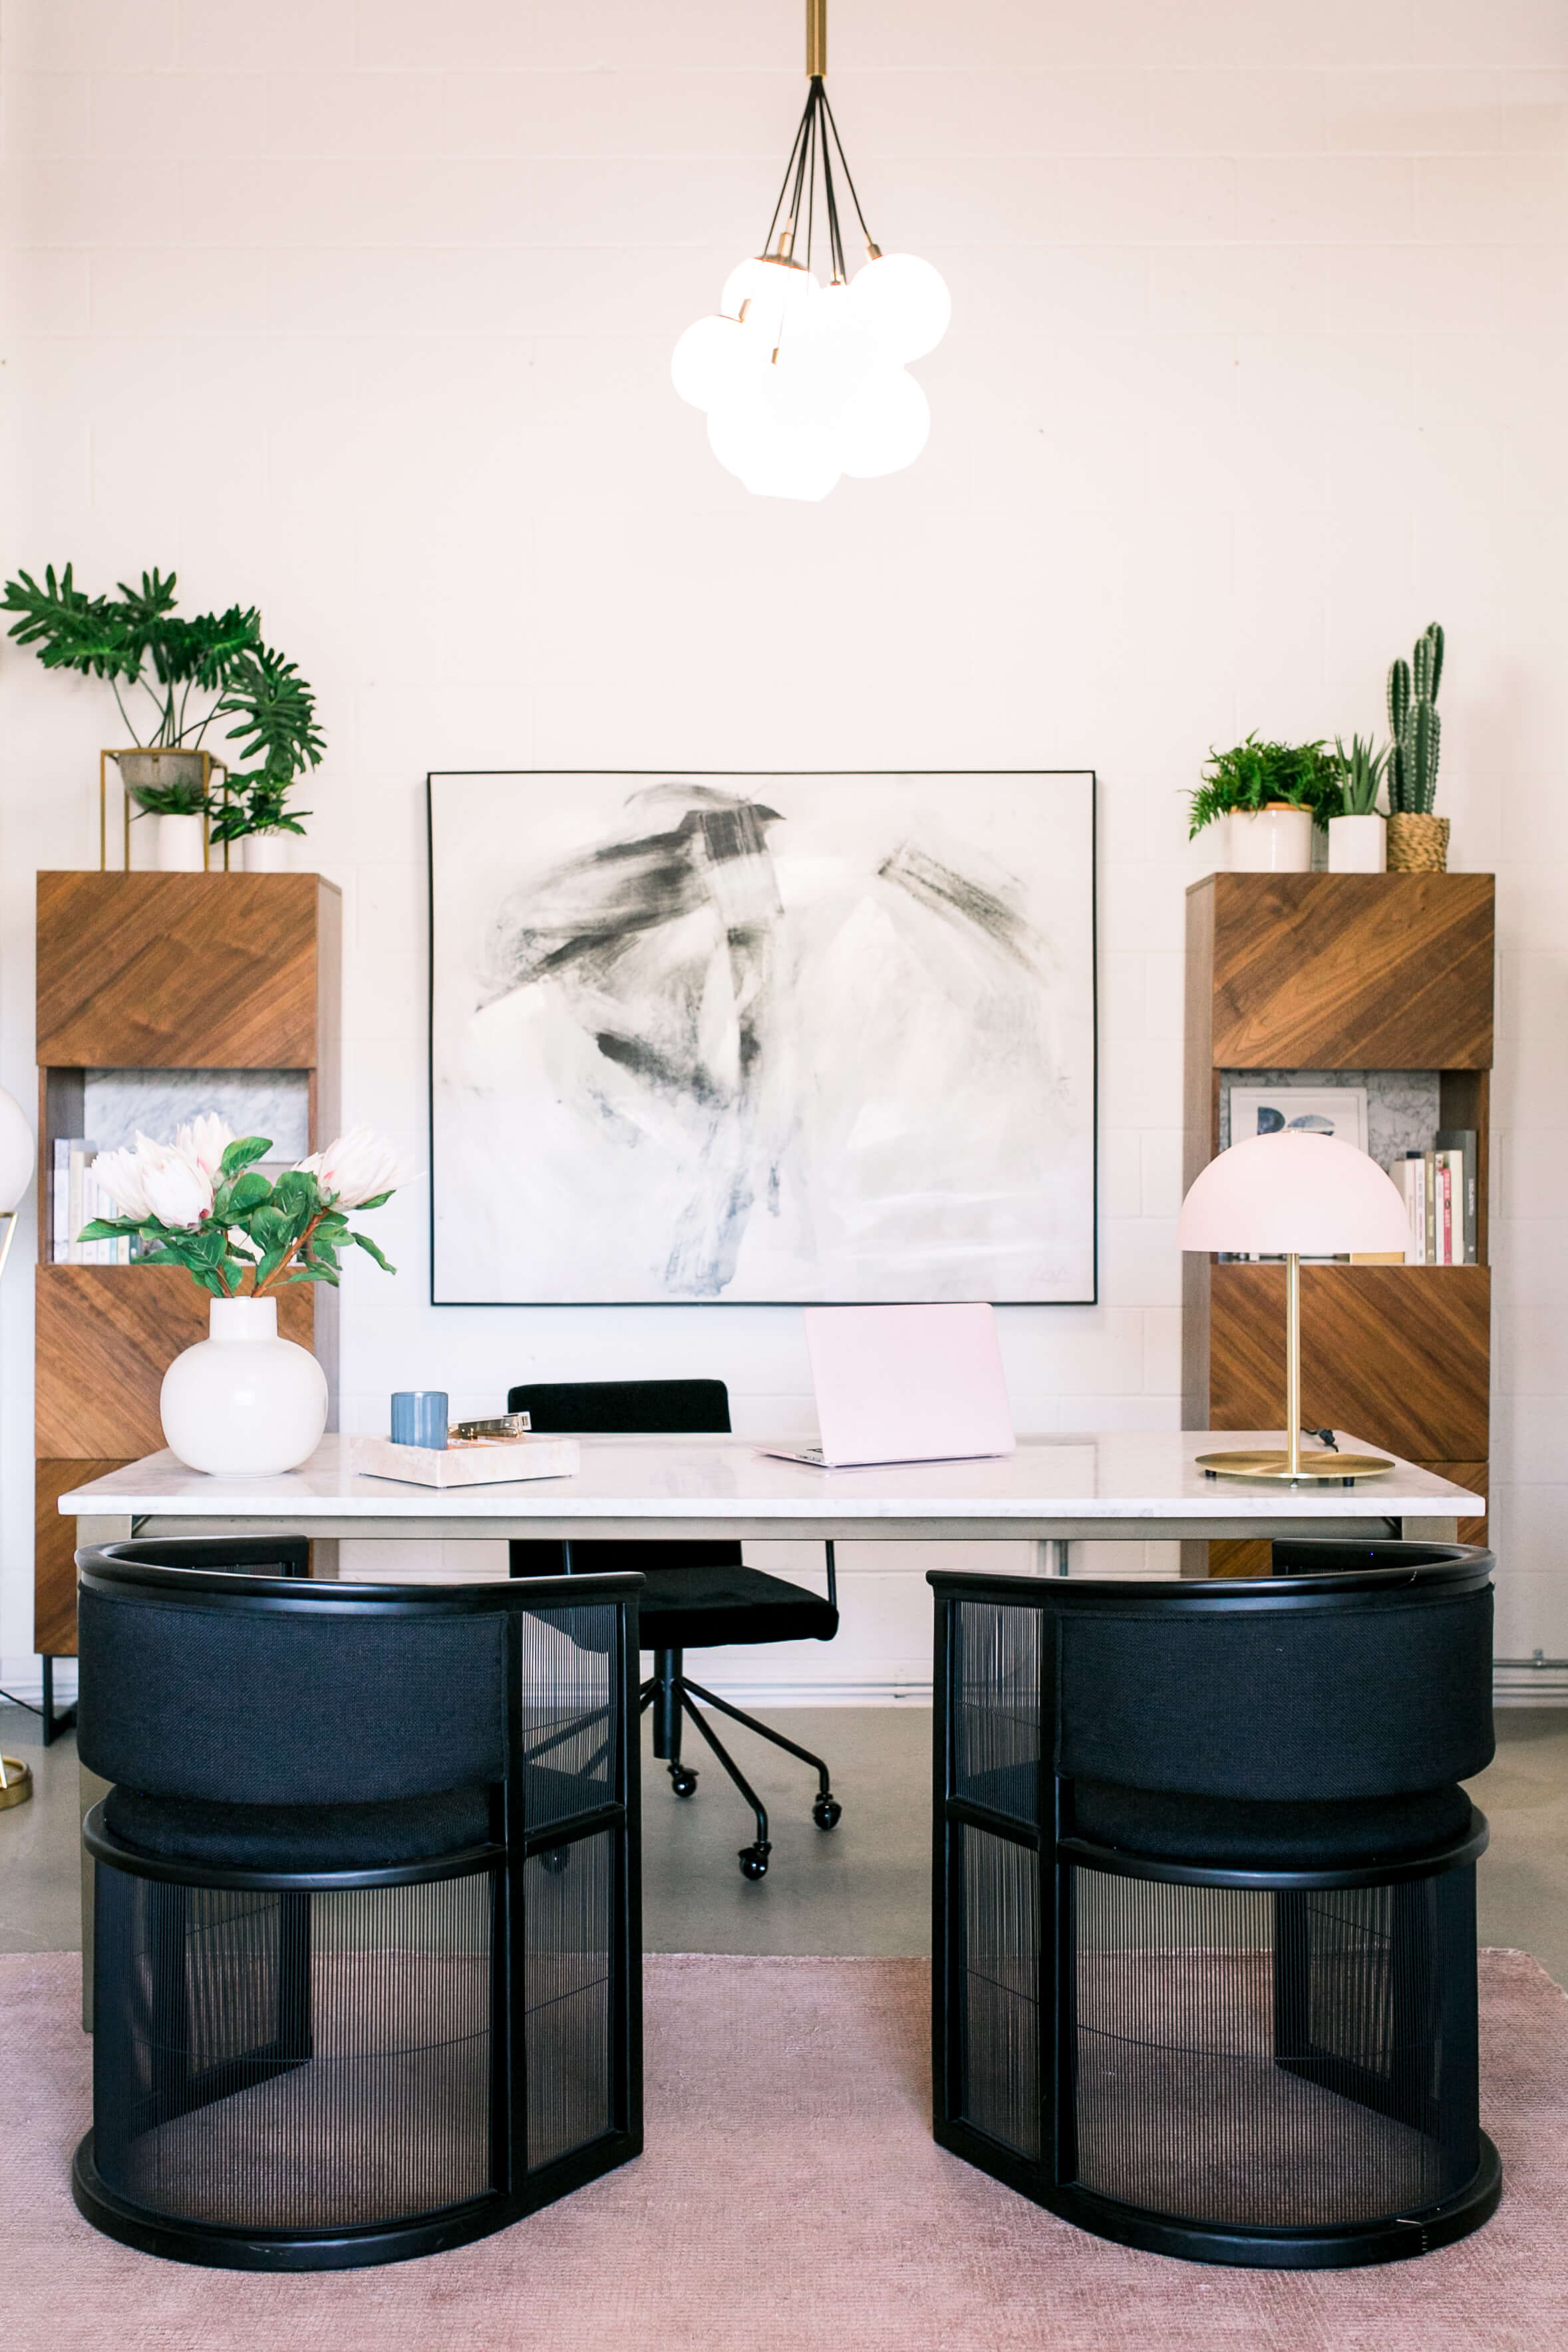 GINNY_MACDONALD_CREATE_CULTIVATE_EXECUTIVE_OFFICE_CHAIRS